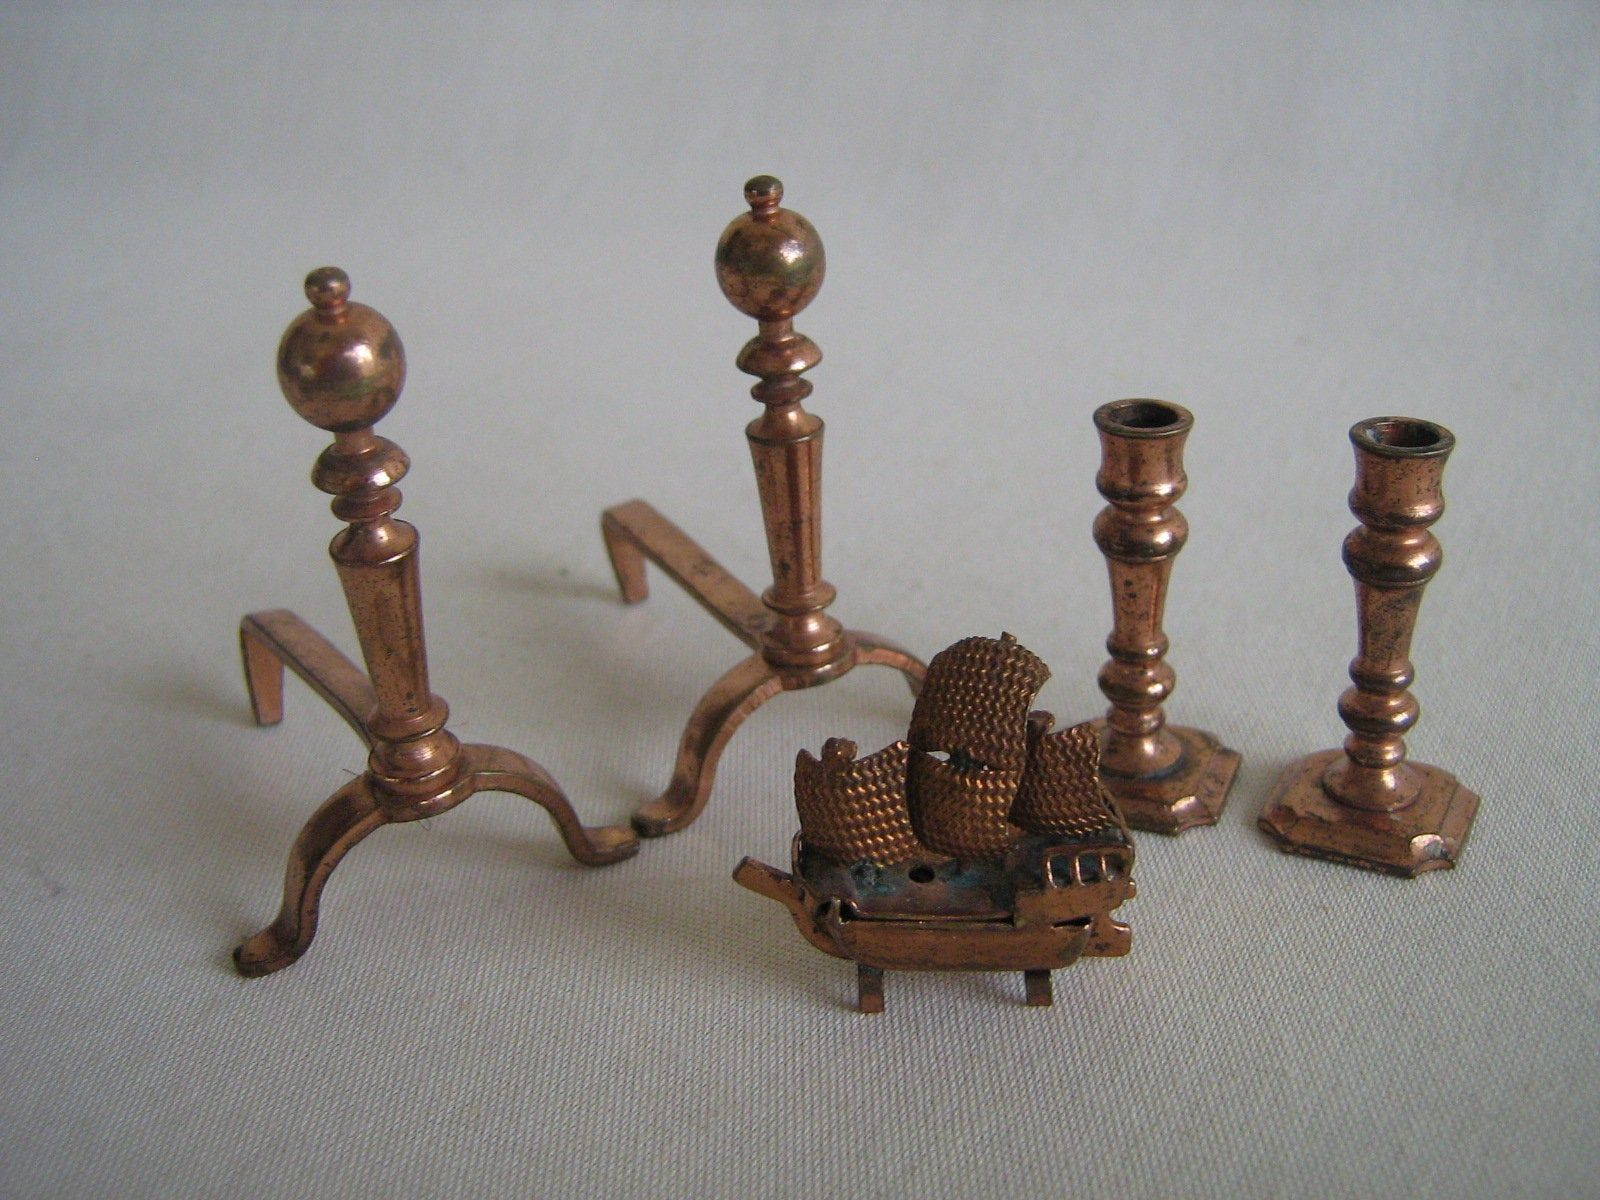 Vintage Collection of TYNIETOY Copper Dollhouse Accessories- Andirons, Candlesticks, Sailboat - 1:12 Scale #dollhouseaccessories